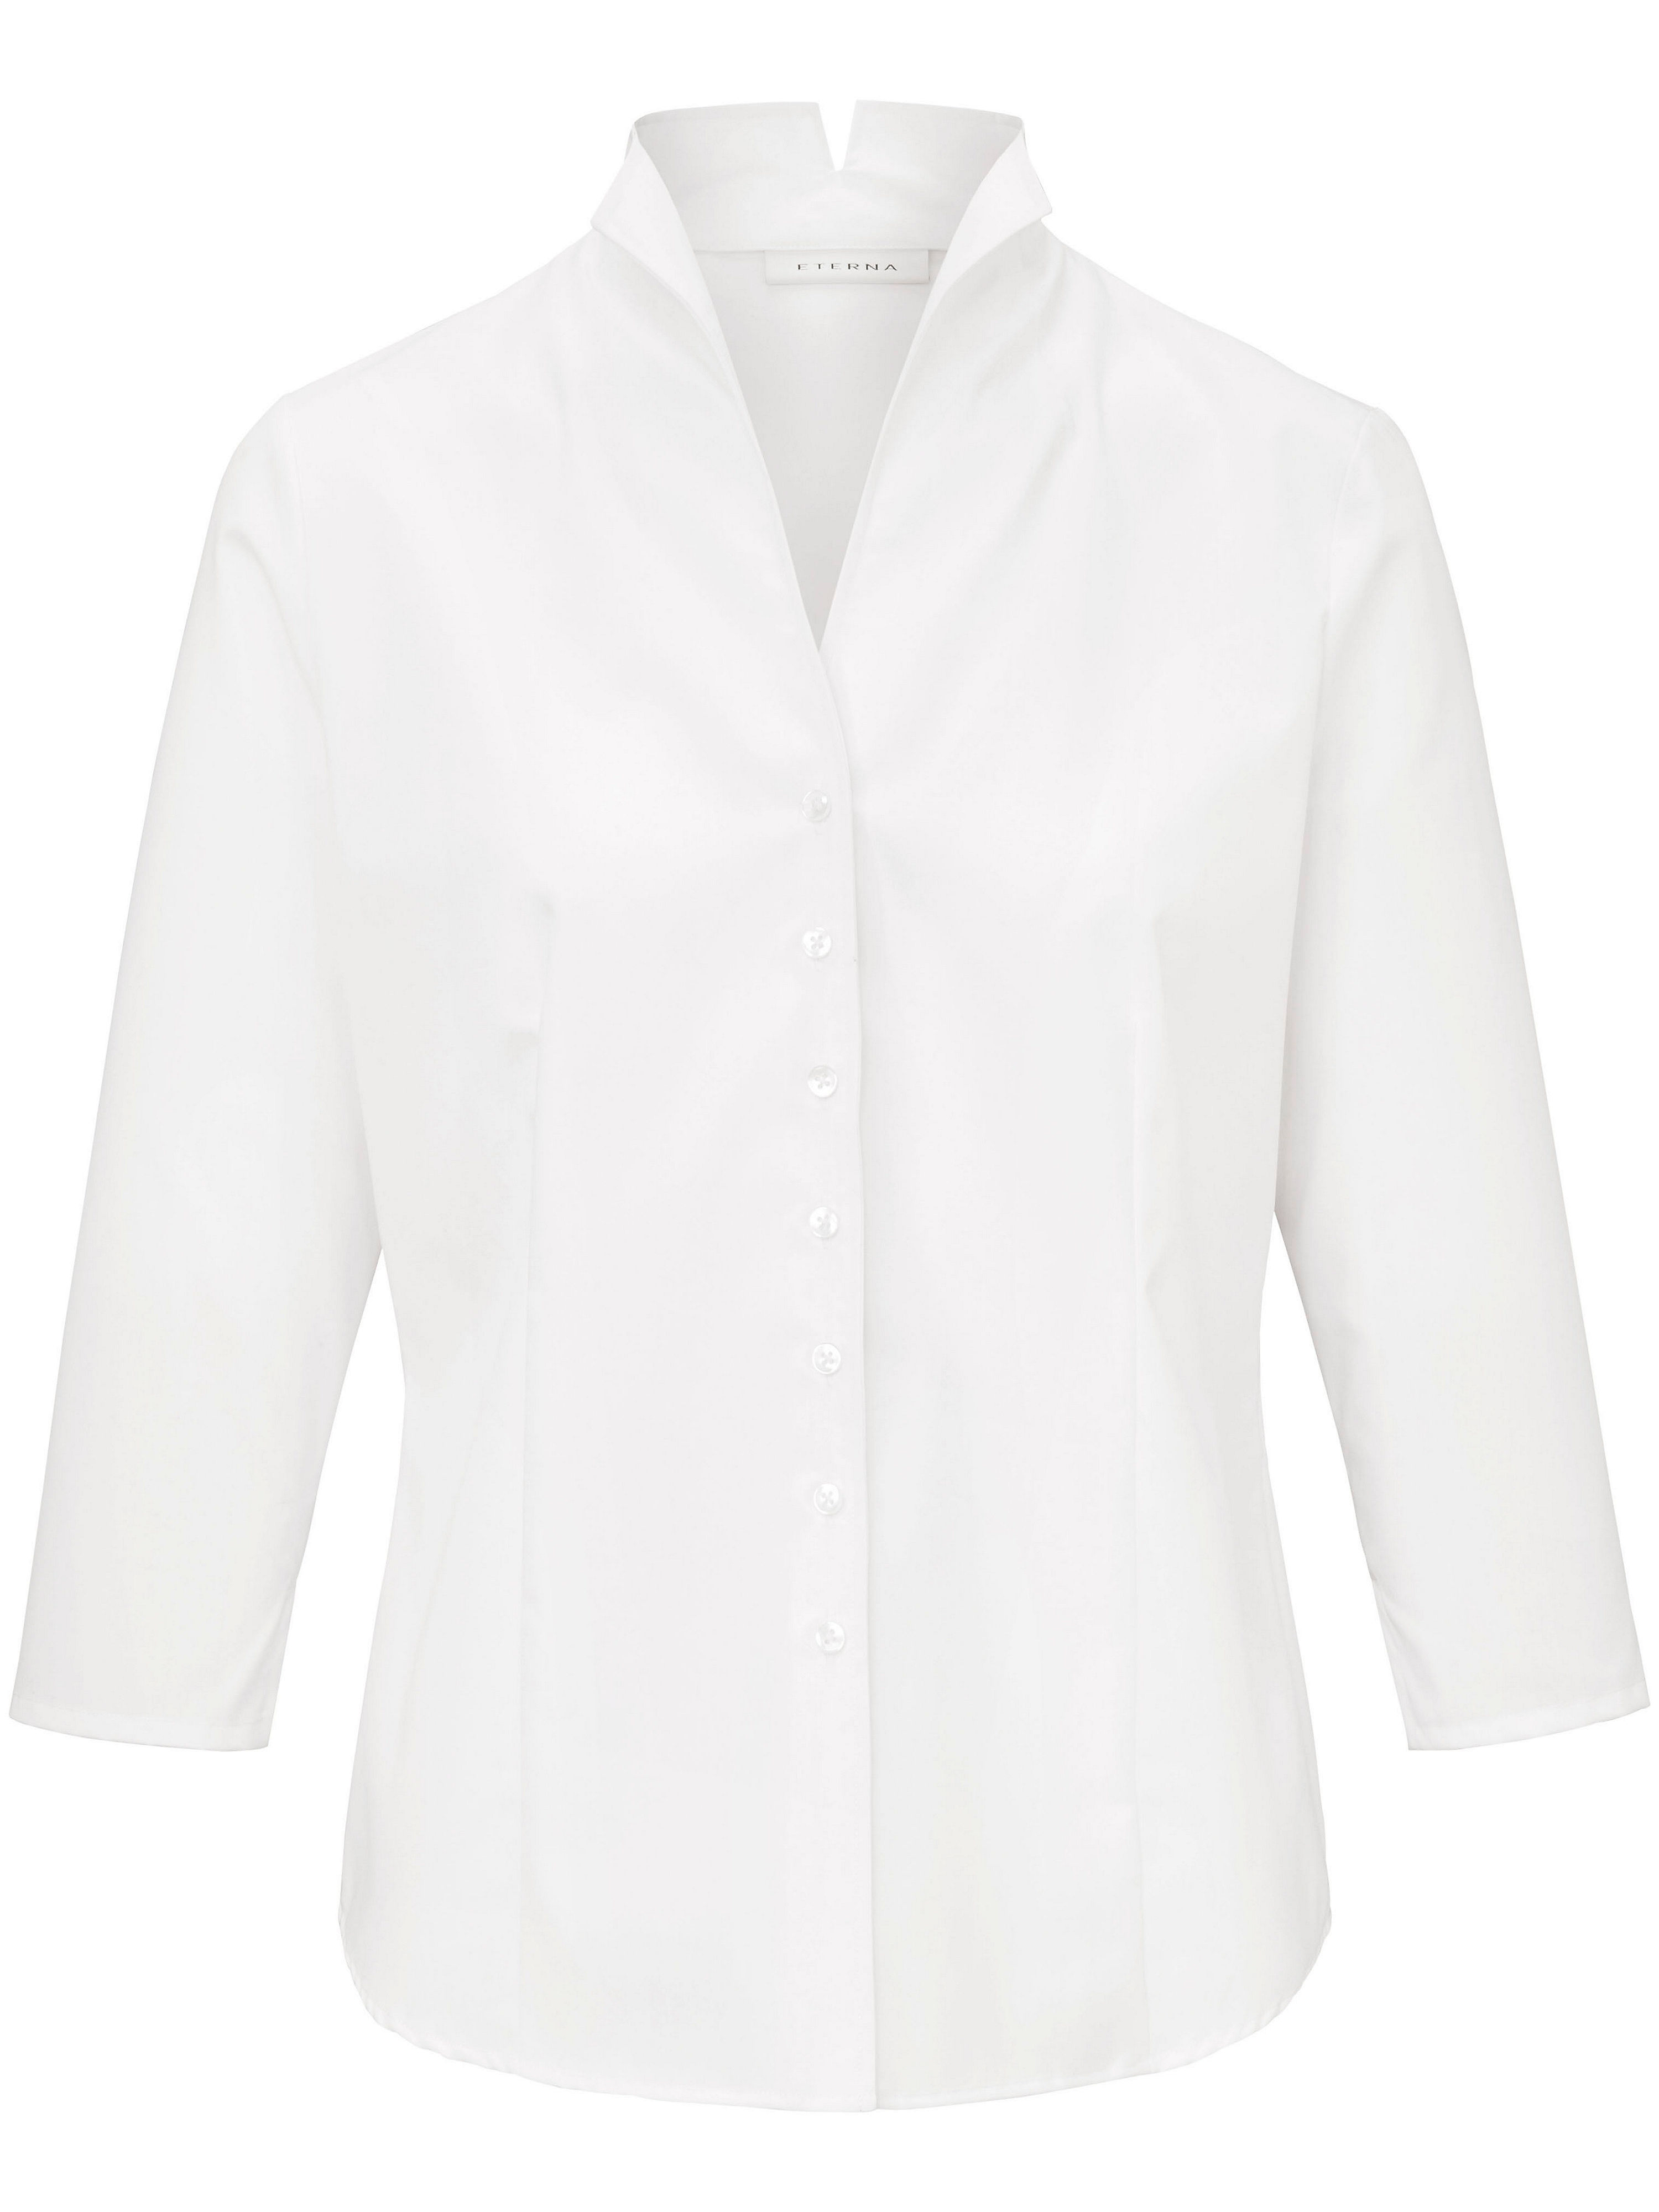 Le chemisier manches 3/4 100% coton  Eterna blanc taille 54